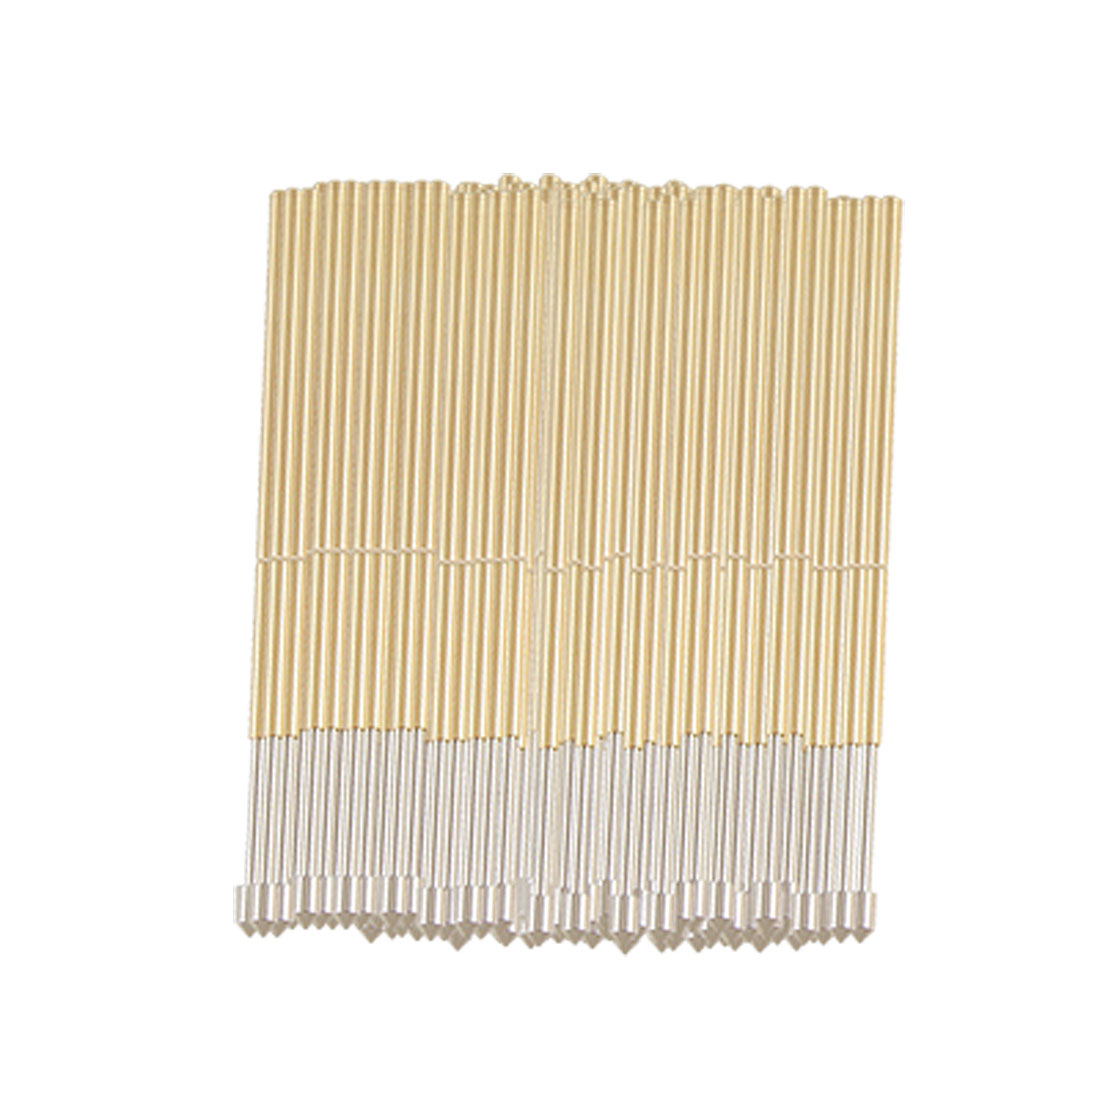 100 Pcs 1.2mm Dia Convex Tip Spring Loaded Testing Probe